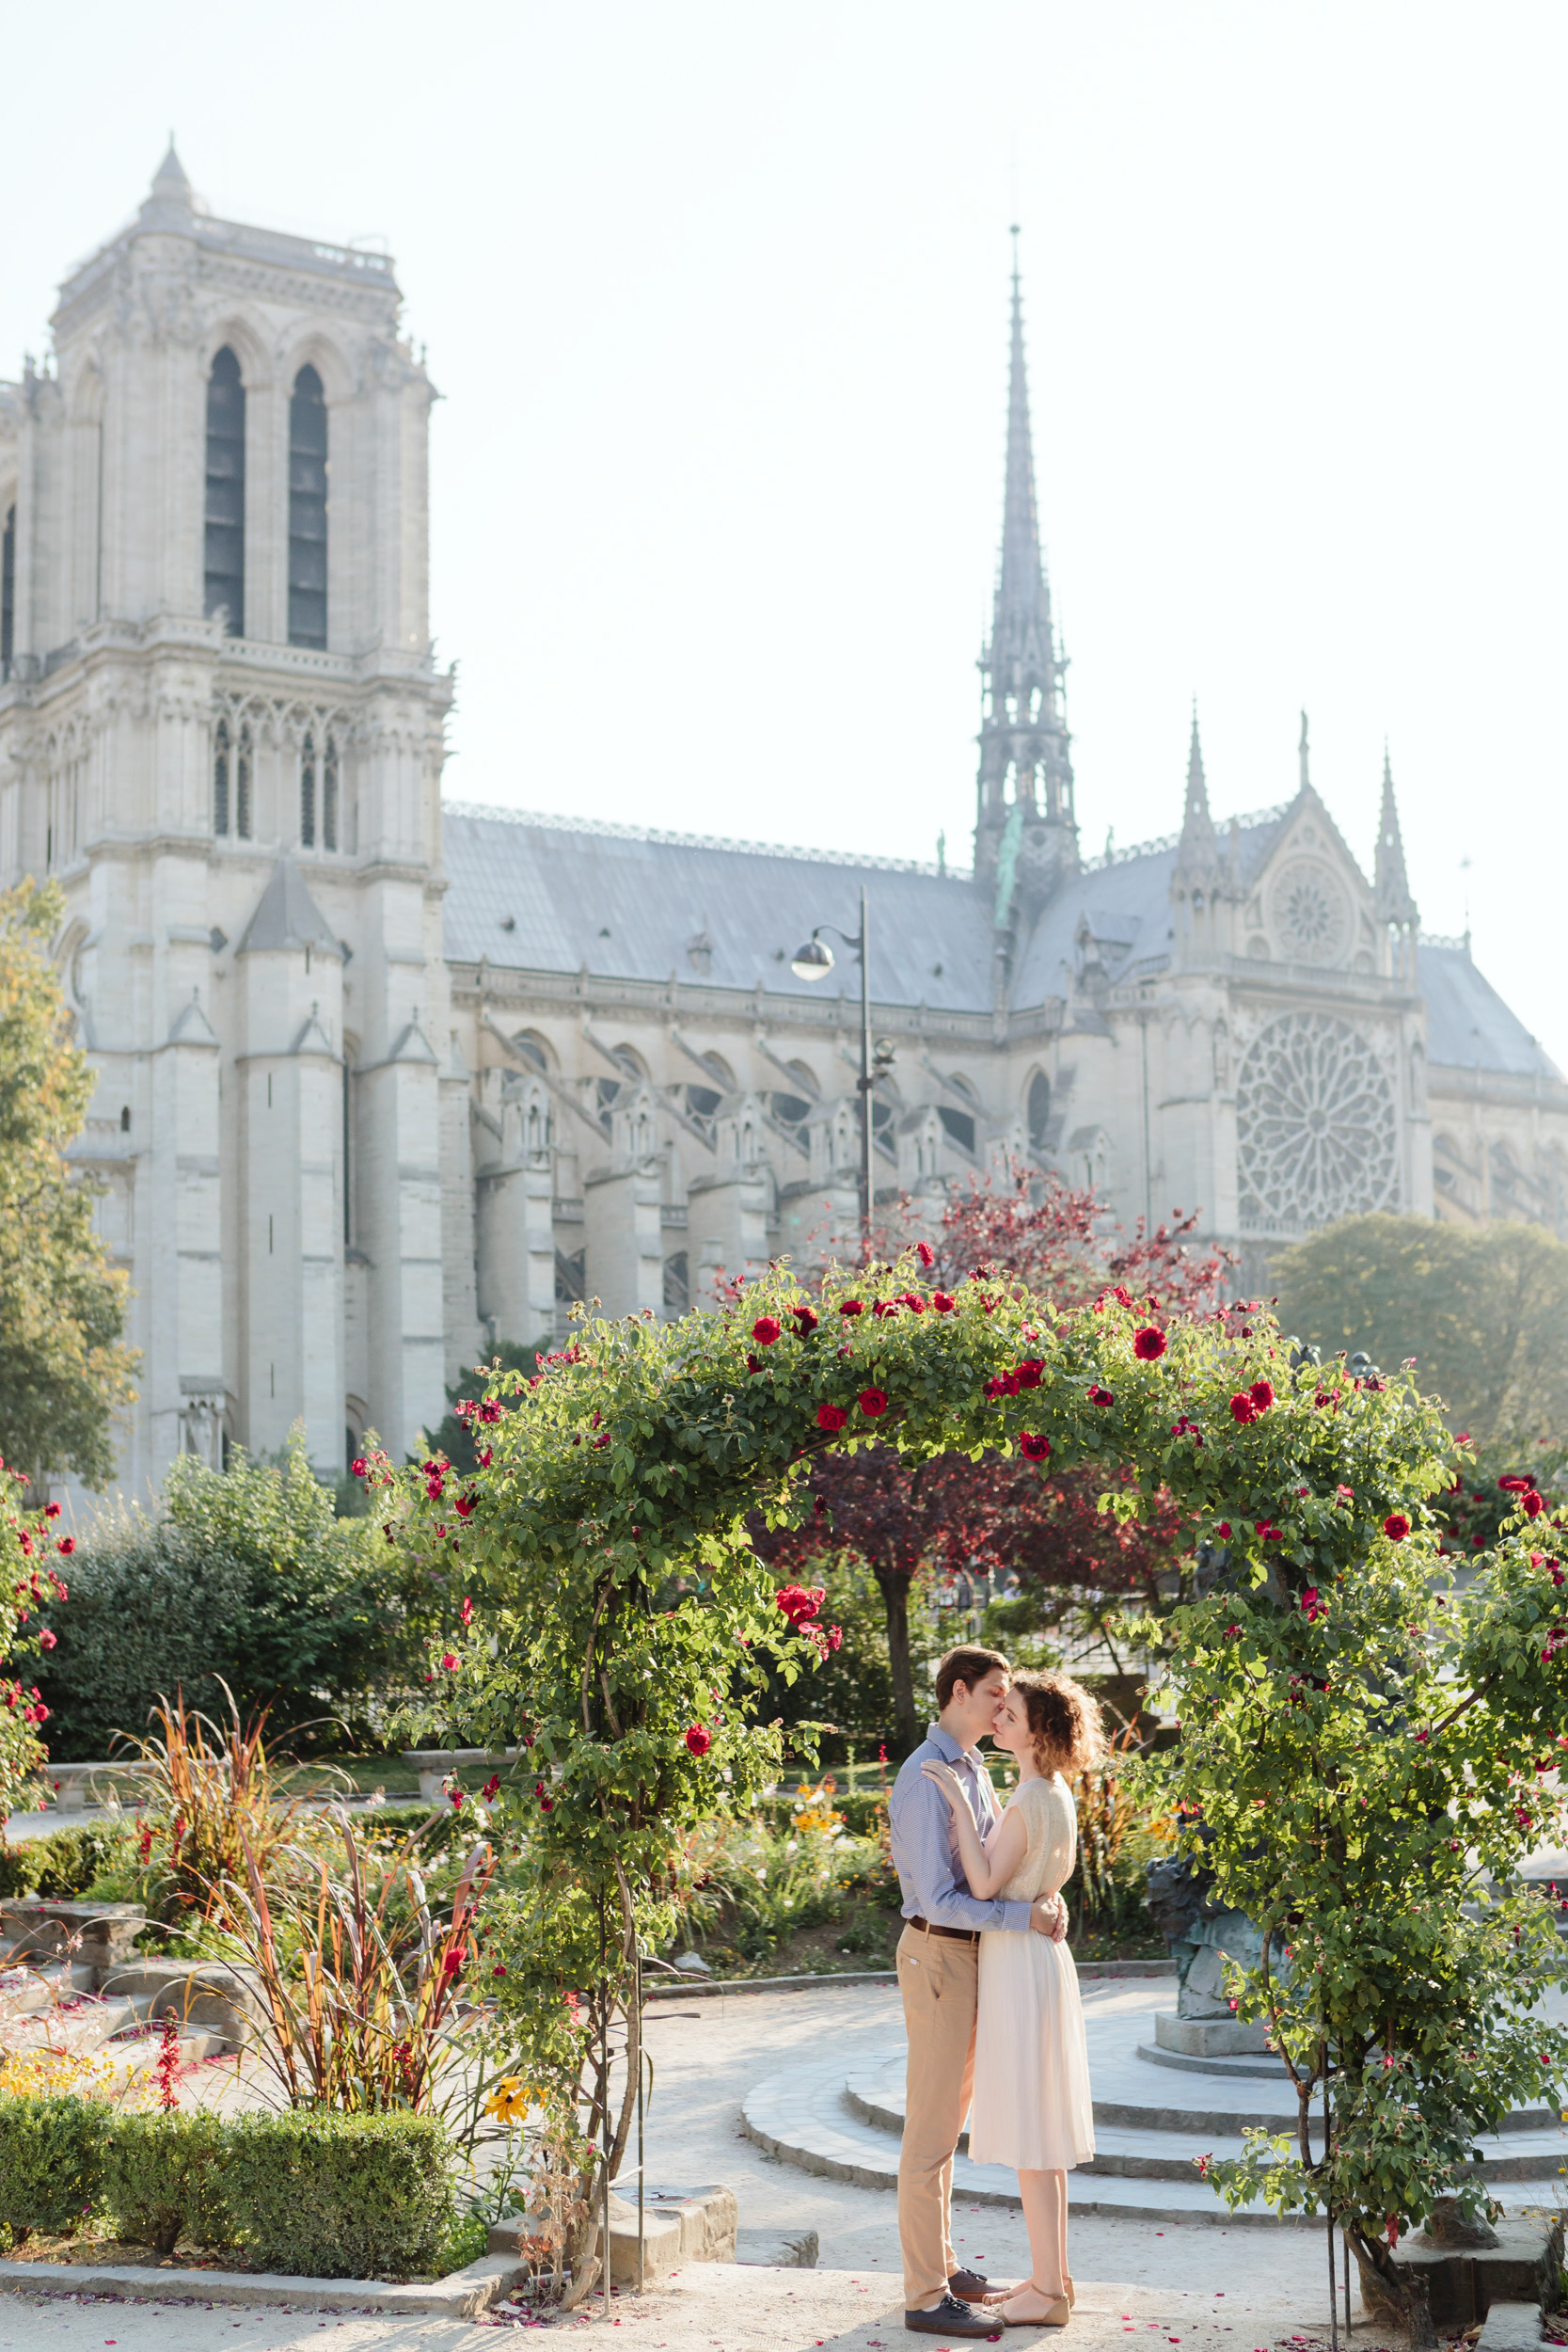 Couple in love kissing by Notre Dame Cathedral rose garden in Paris captured by Paris Photographer Federico Guendel IheartParisFr